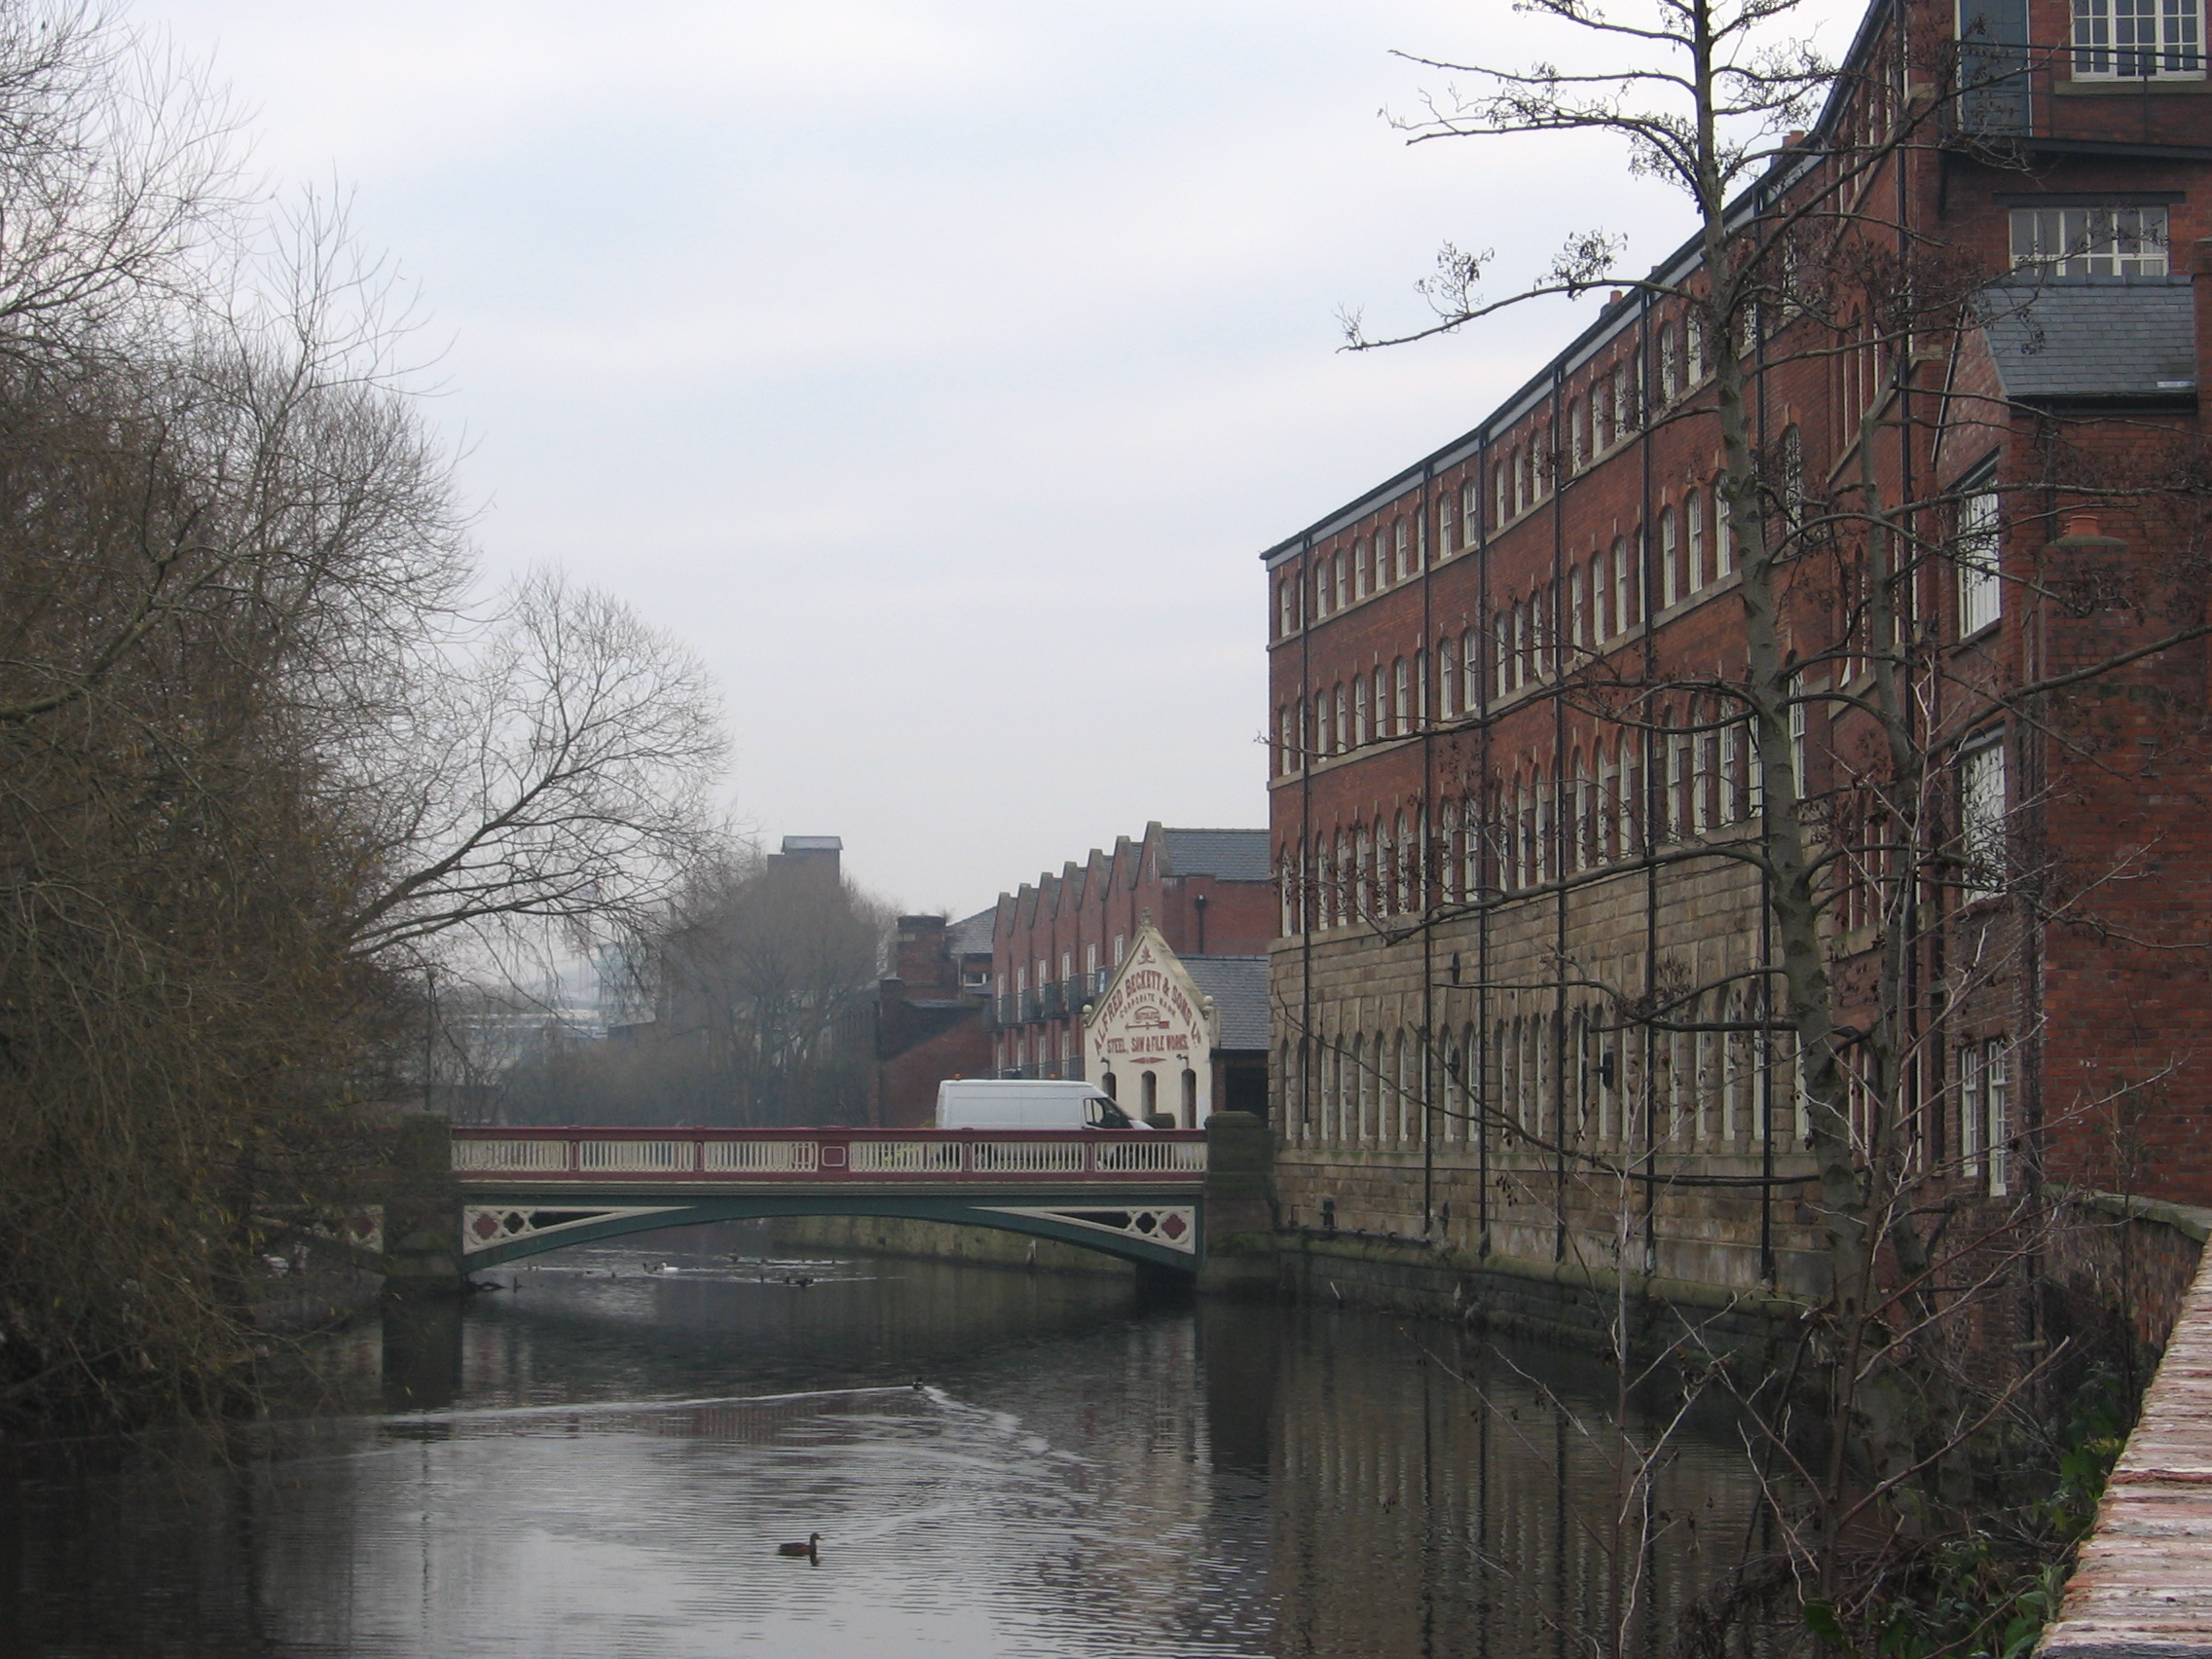 An image of the River Don, home to the ravenous water gods of Sheffield folklore